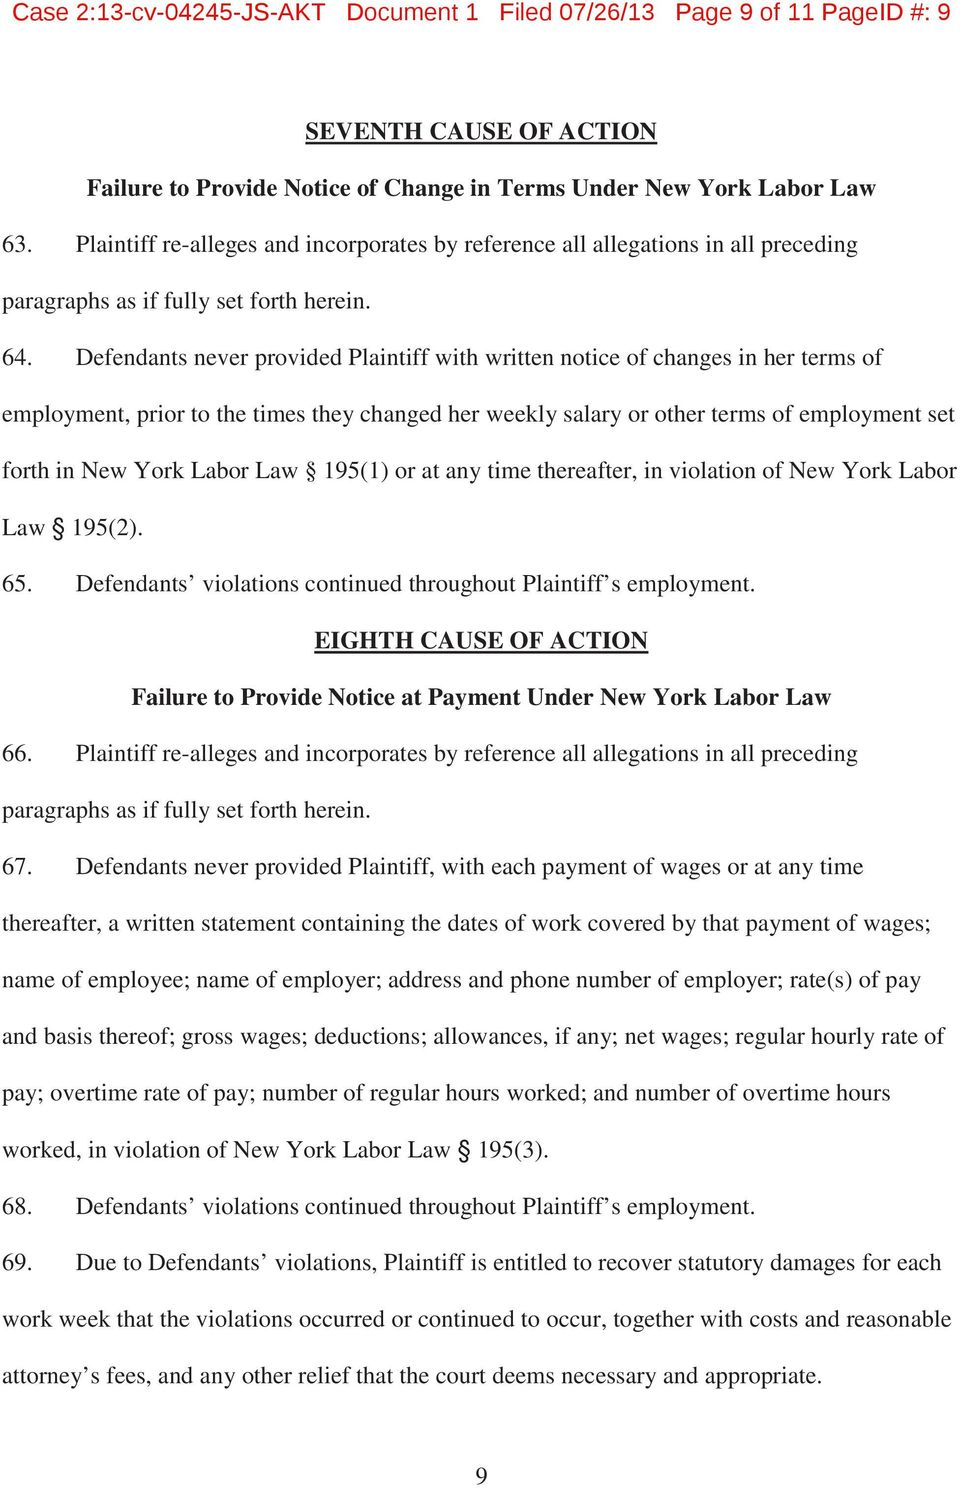 Defendants never provided Plaintiff with written notice of changes in her terms of employment, prior to the times they changed her weekly salary or other terms of employment set forth in New York